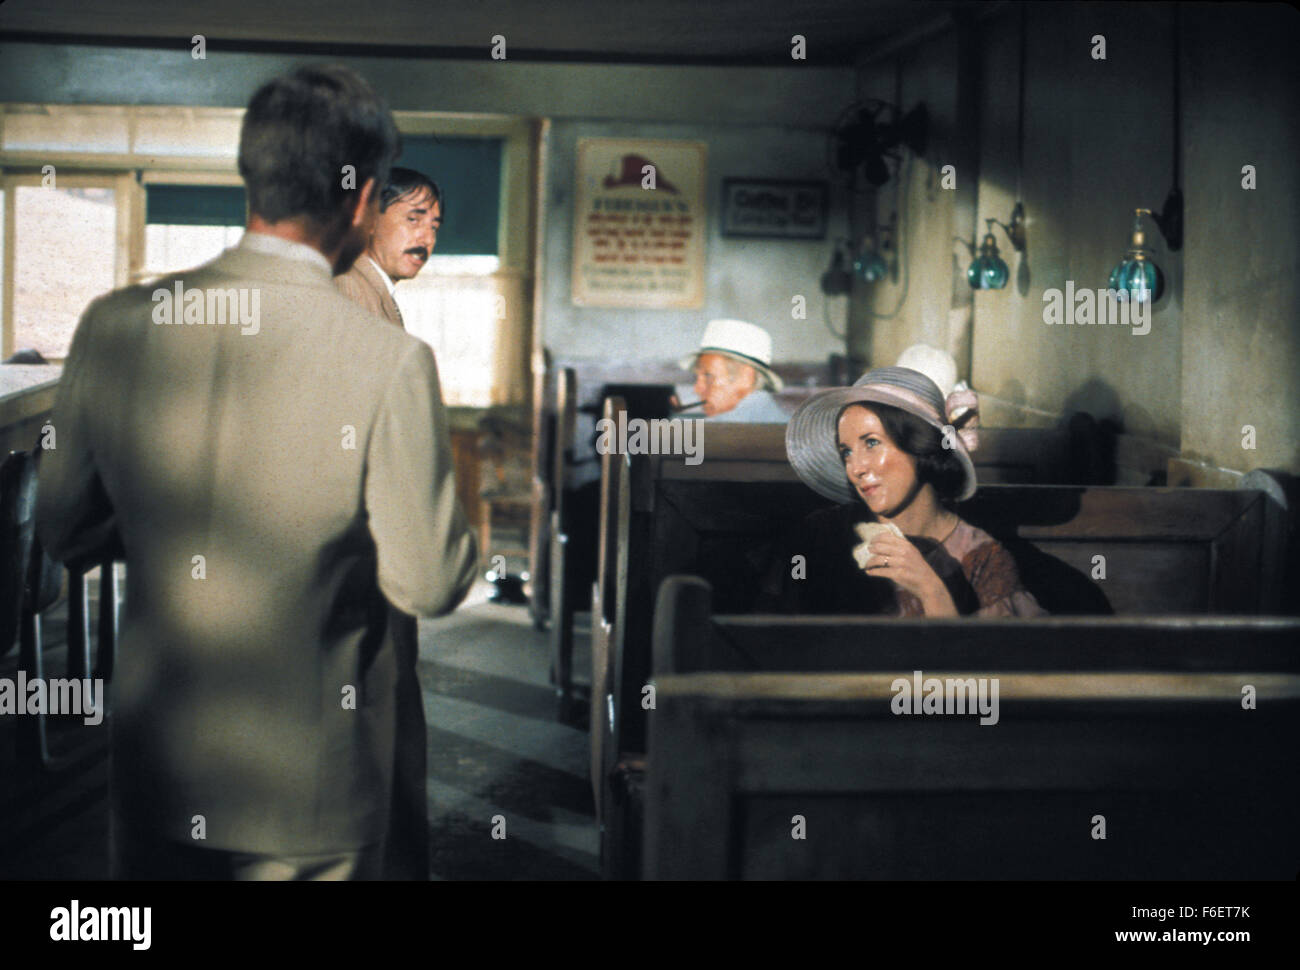 RELEASE DATE: July 1970. MOVIE TITLE: The Moonshine War. STUDIO: Filmways Pictures. PLOT: . PICTURED: . - Stock Image